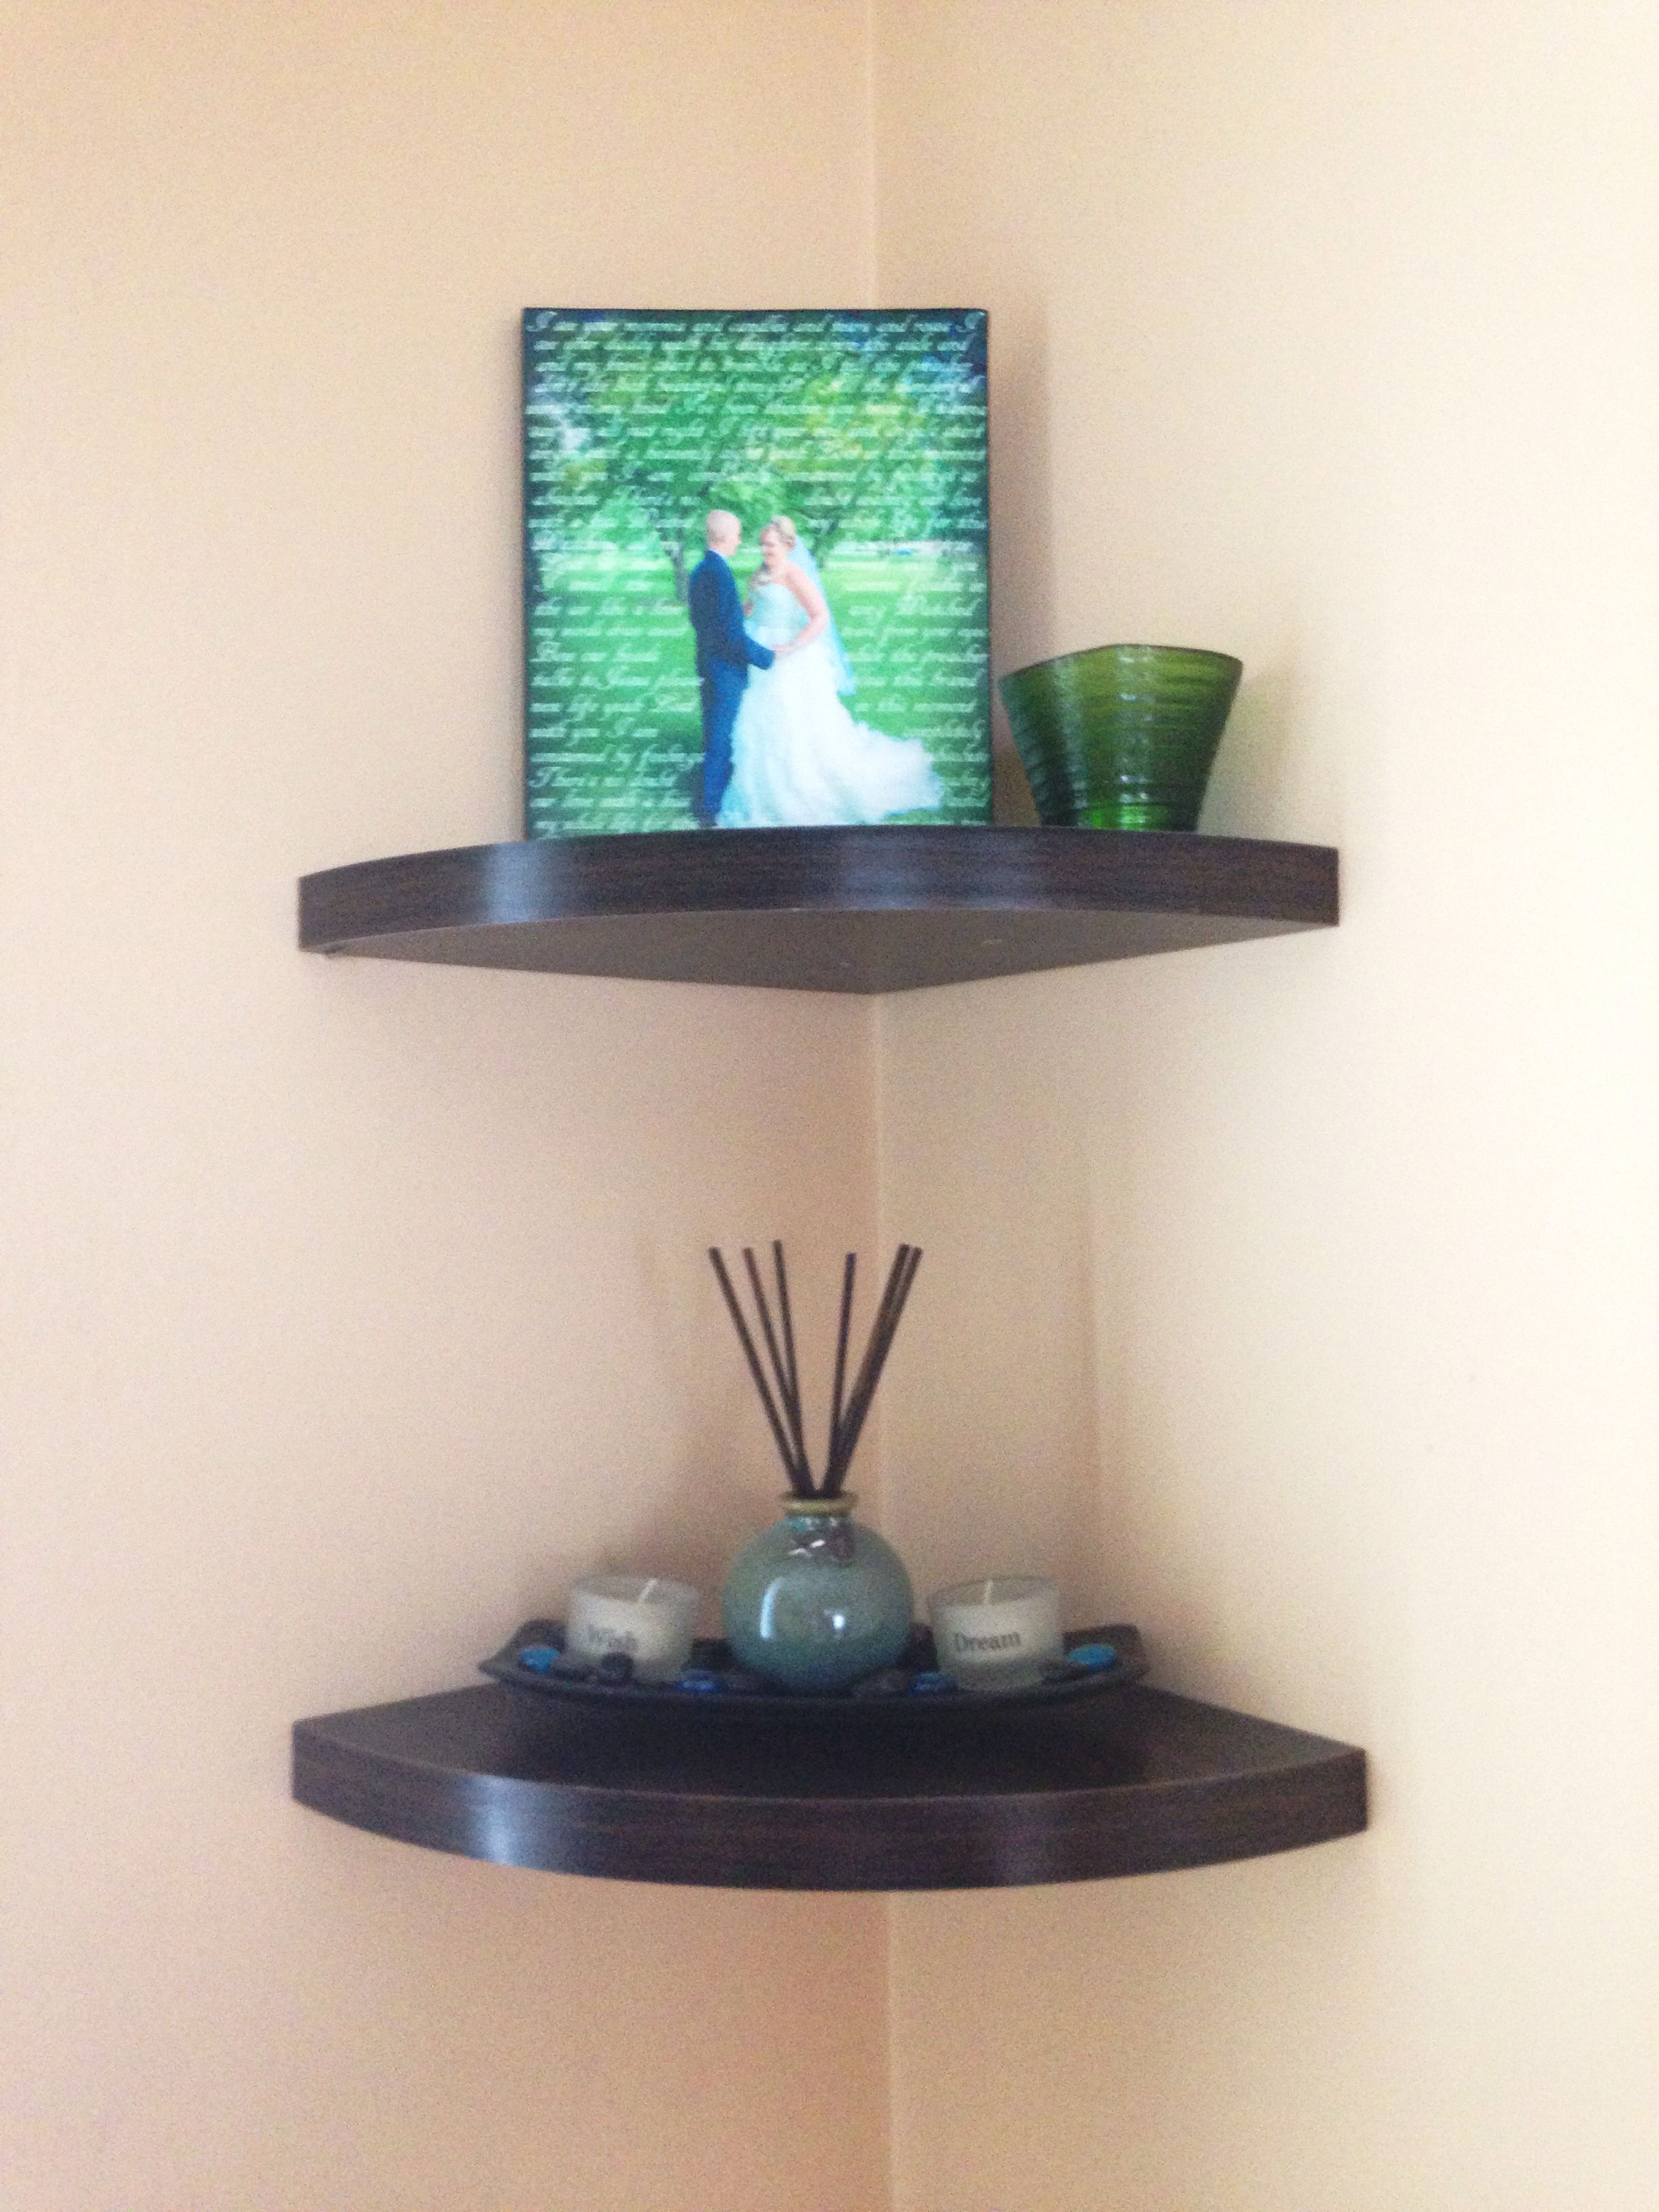 Floating Shelves Target Floating Corner Wall Shelf From Target  Folliard House  Pinterest